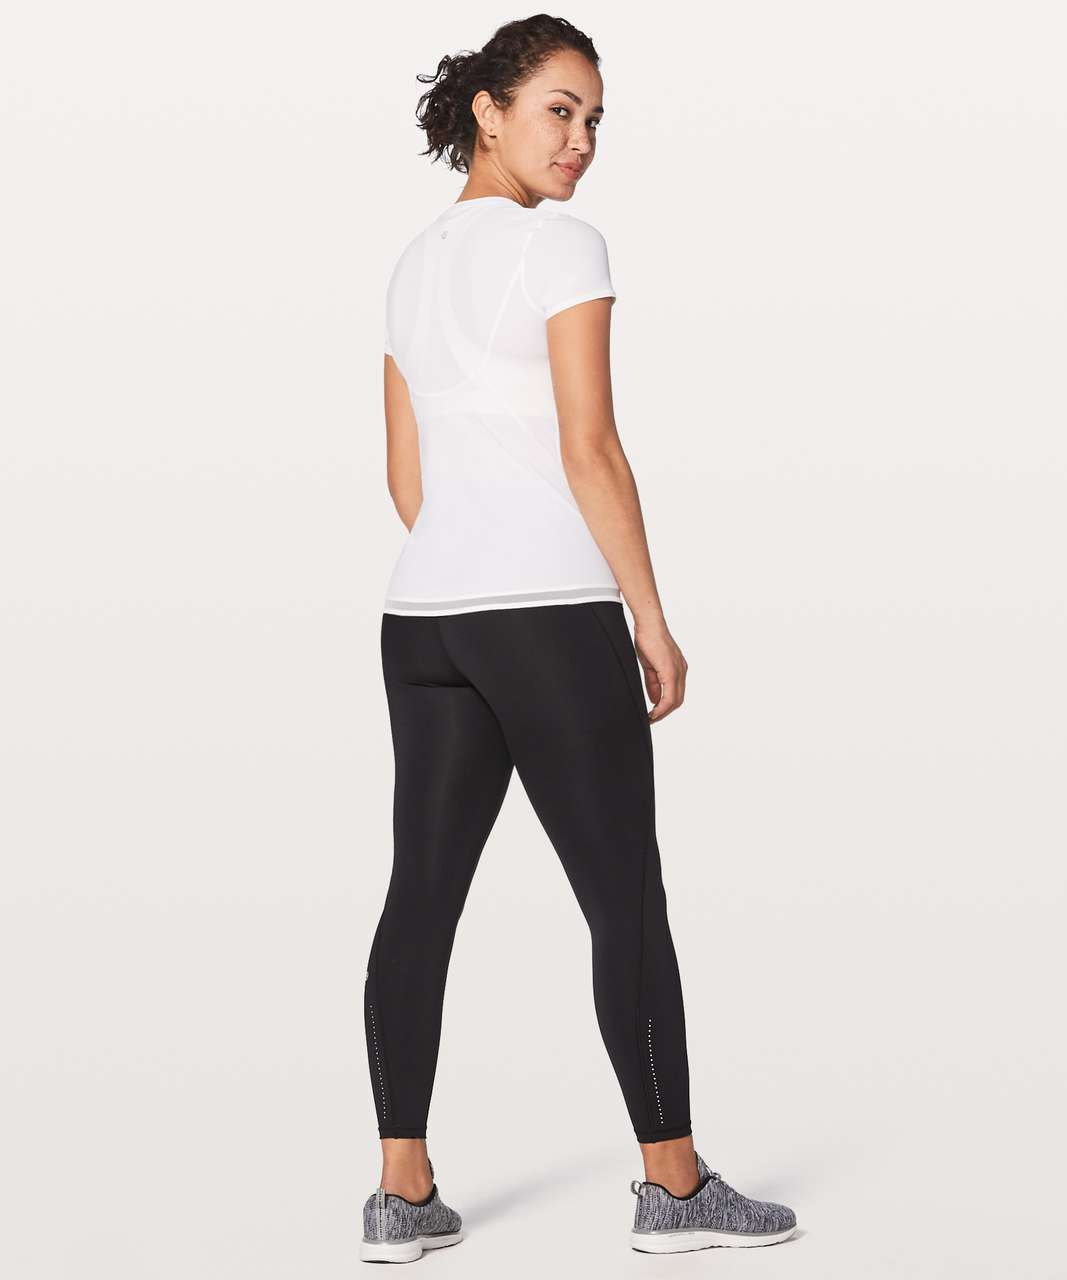 Lululemon Into the Sun Tee - White